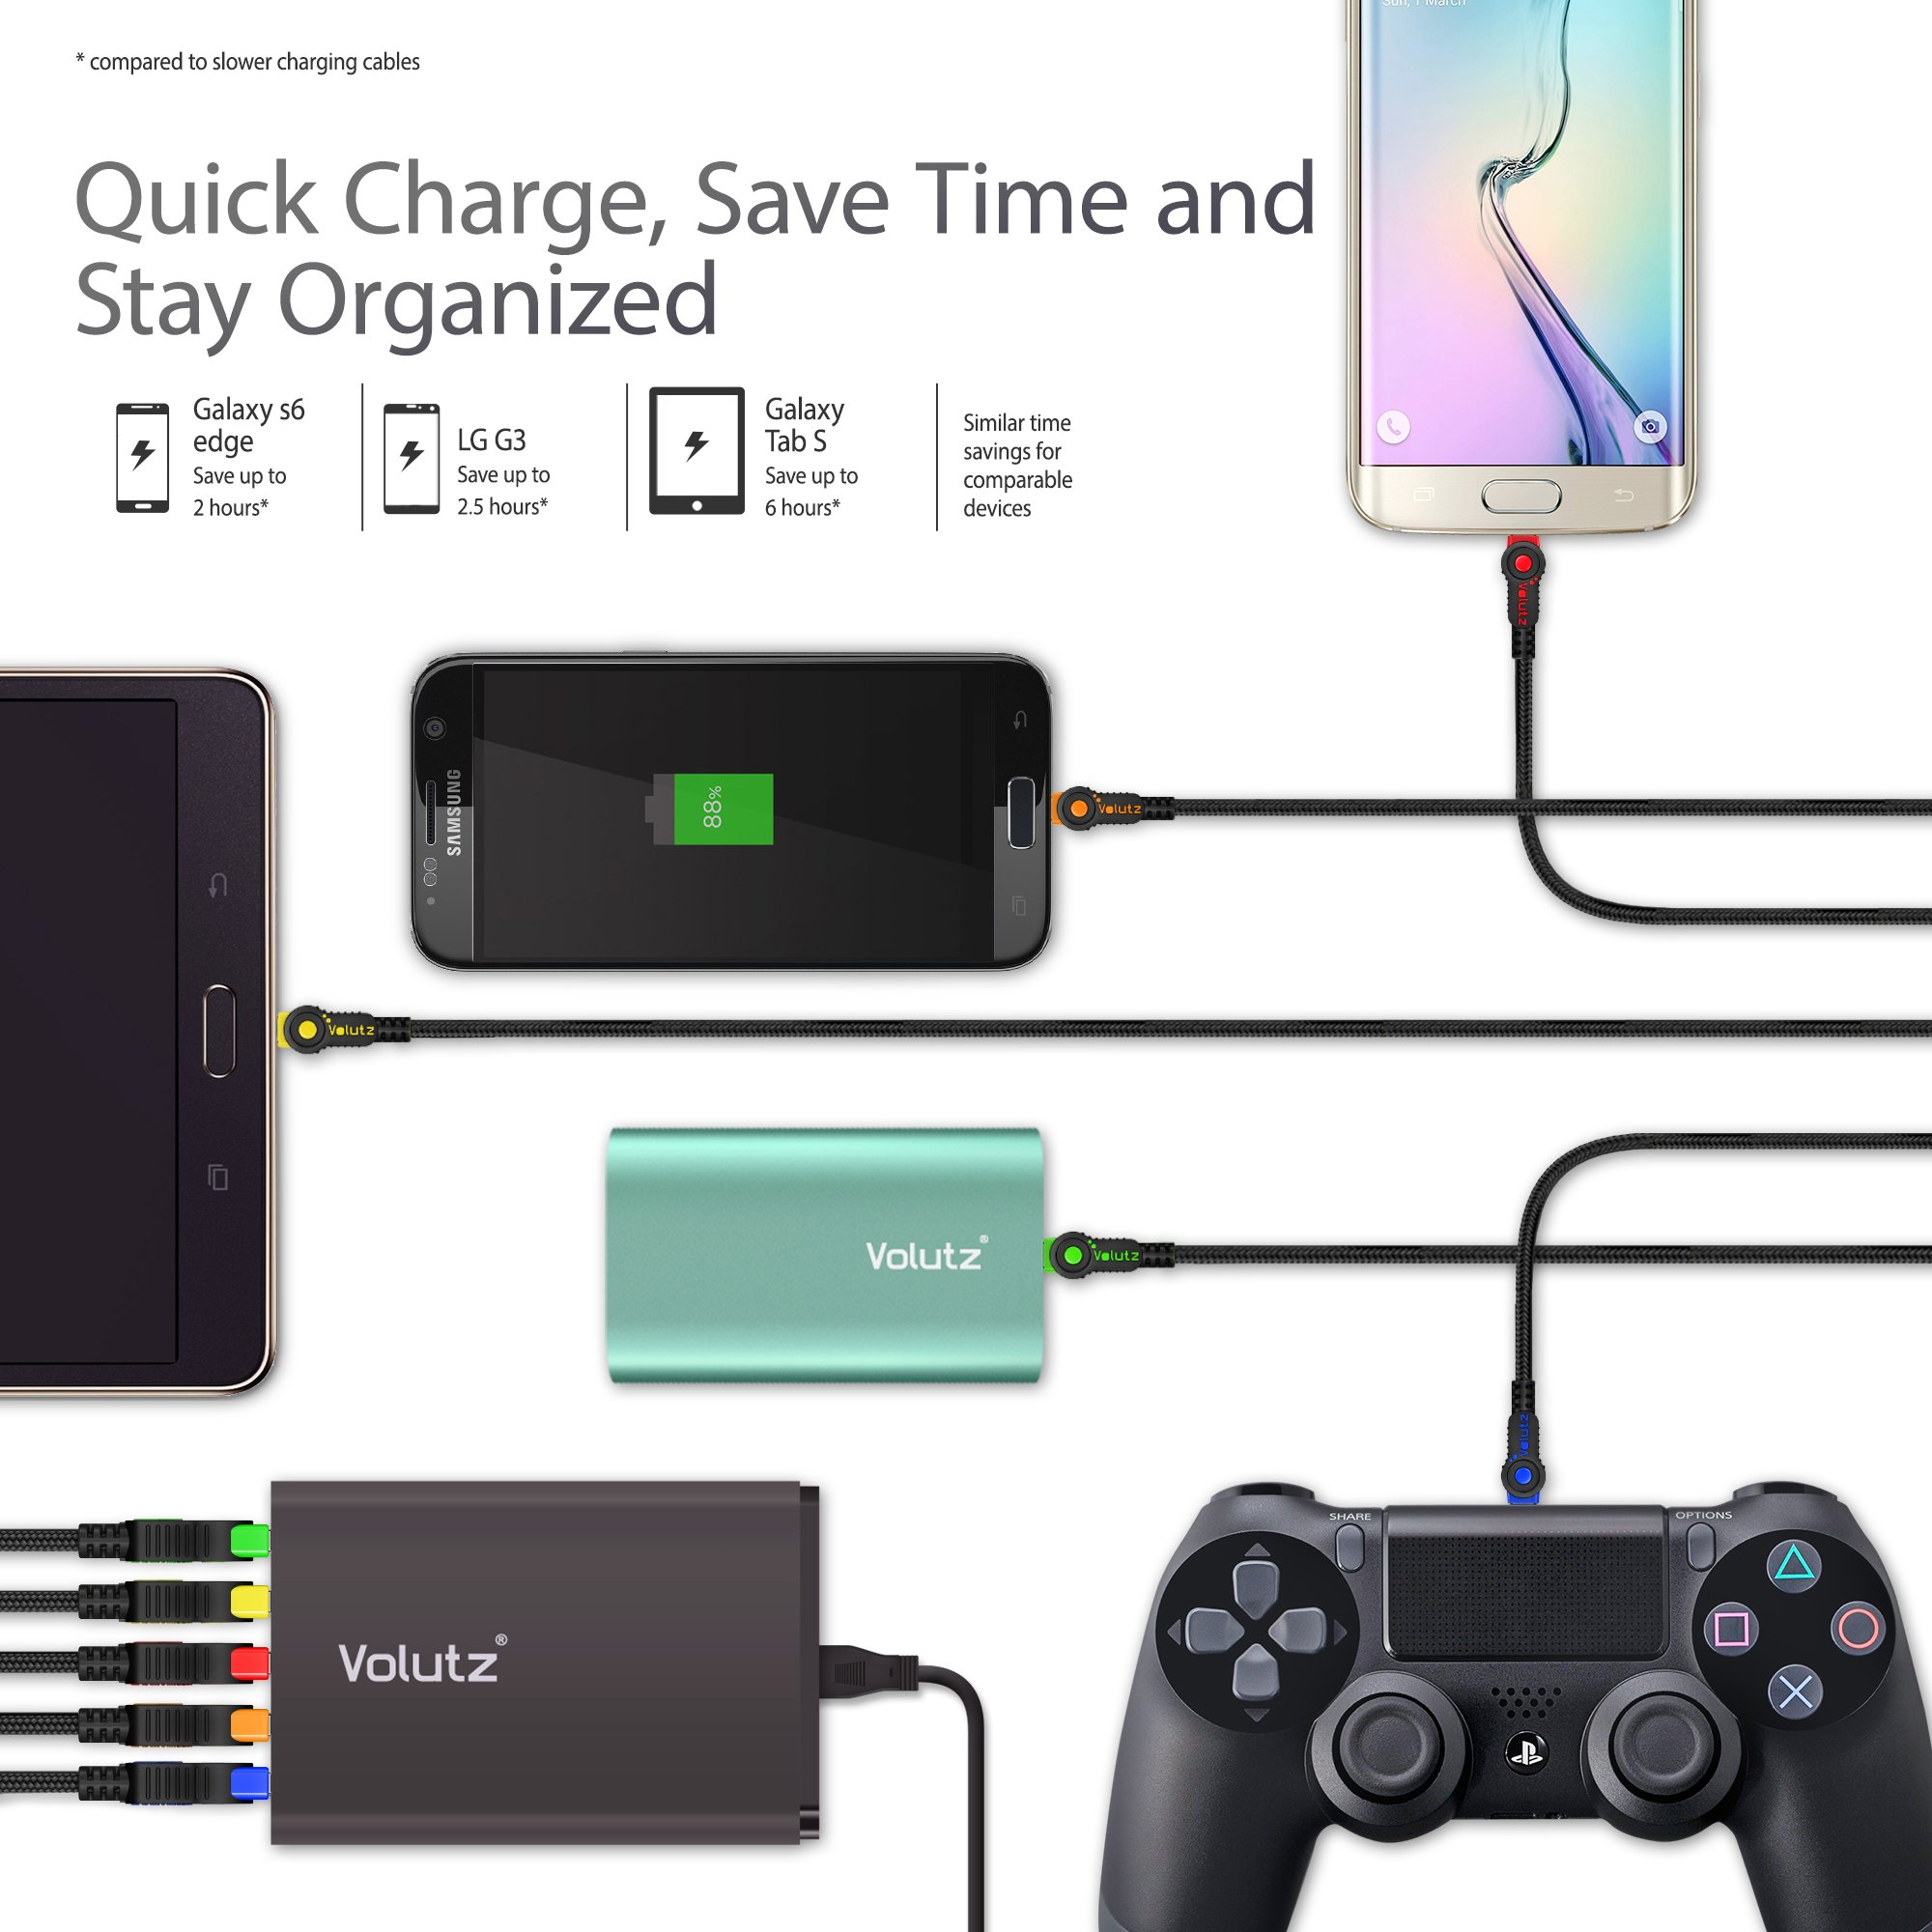 Volutz Micro USB Cable (5 Pack; 10ft + 6.5ft + 3X 3.3ft) Short to Extra Long Braided, Fast Charging Cords, Micro USB to USB 2.0 for Android/Windows/PS4/Xbox and More - Equilibrium Series by Volutz (Image #6)